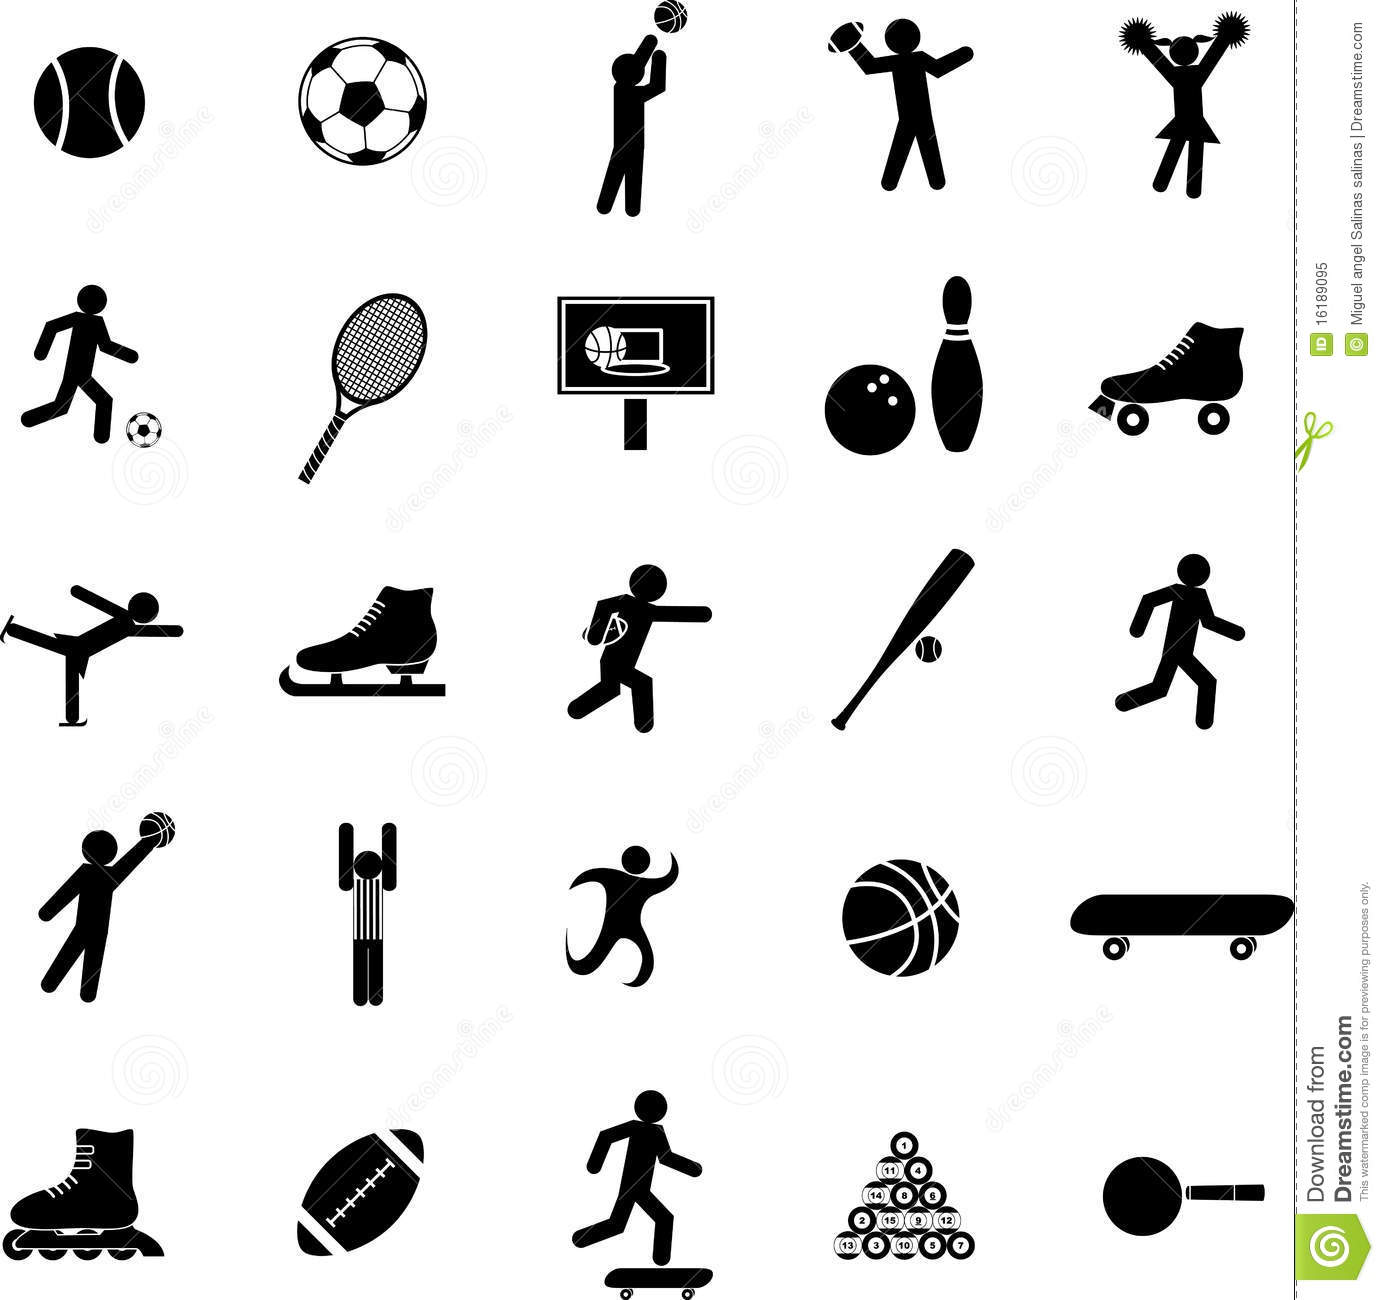 tennis stick figure